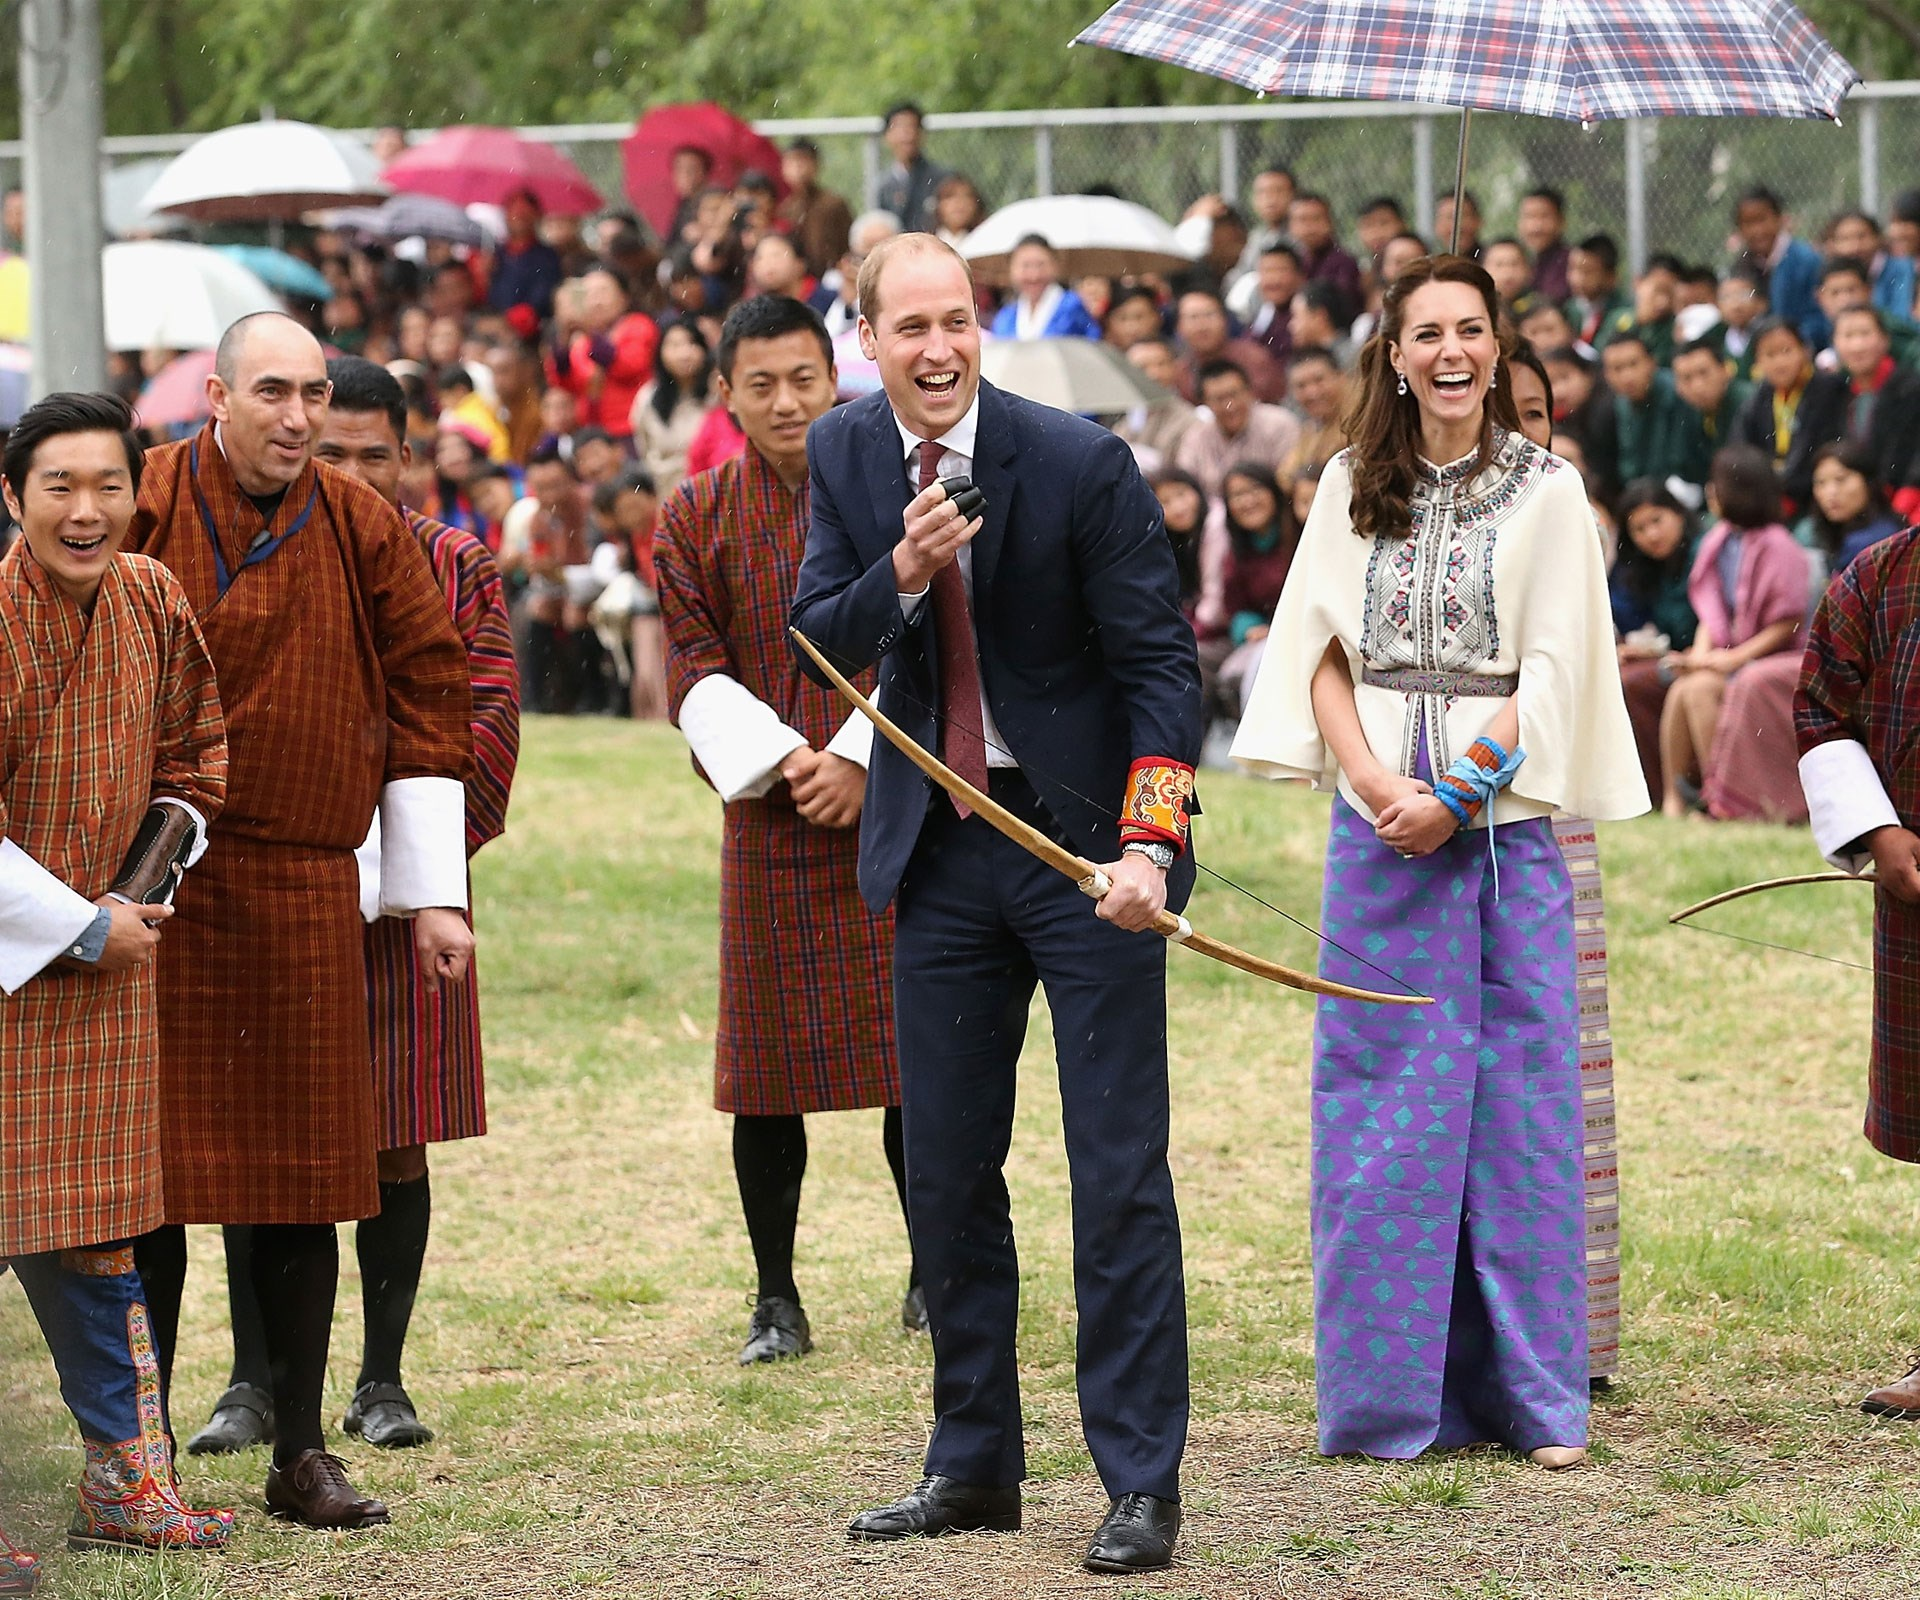 In Bhutan, the couple tried their hand at archery - with hilarious results!